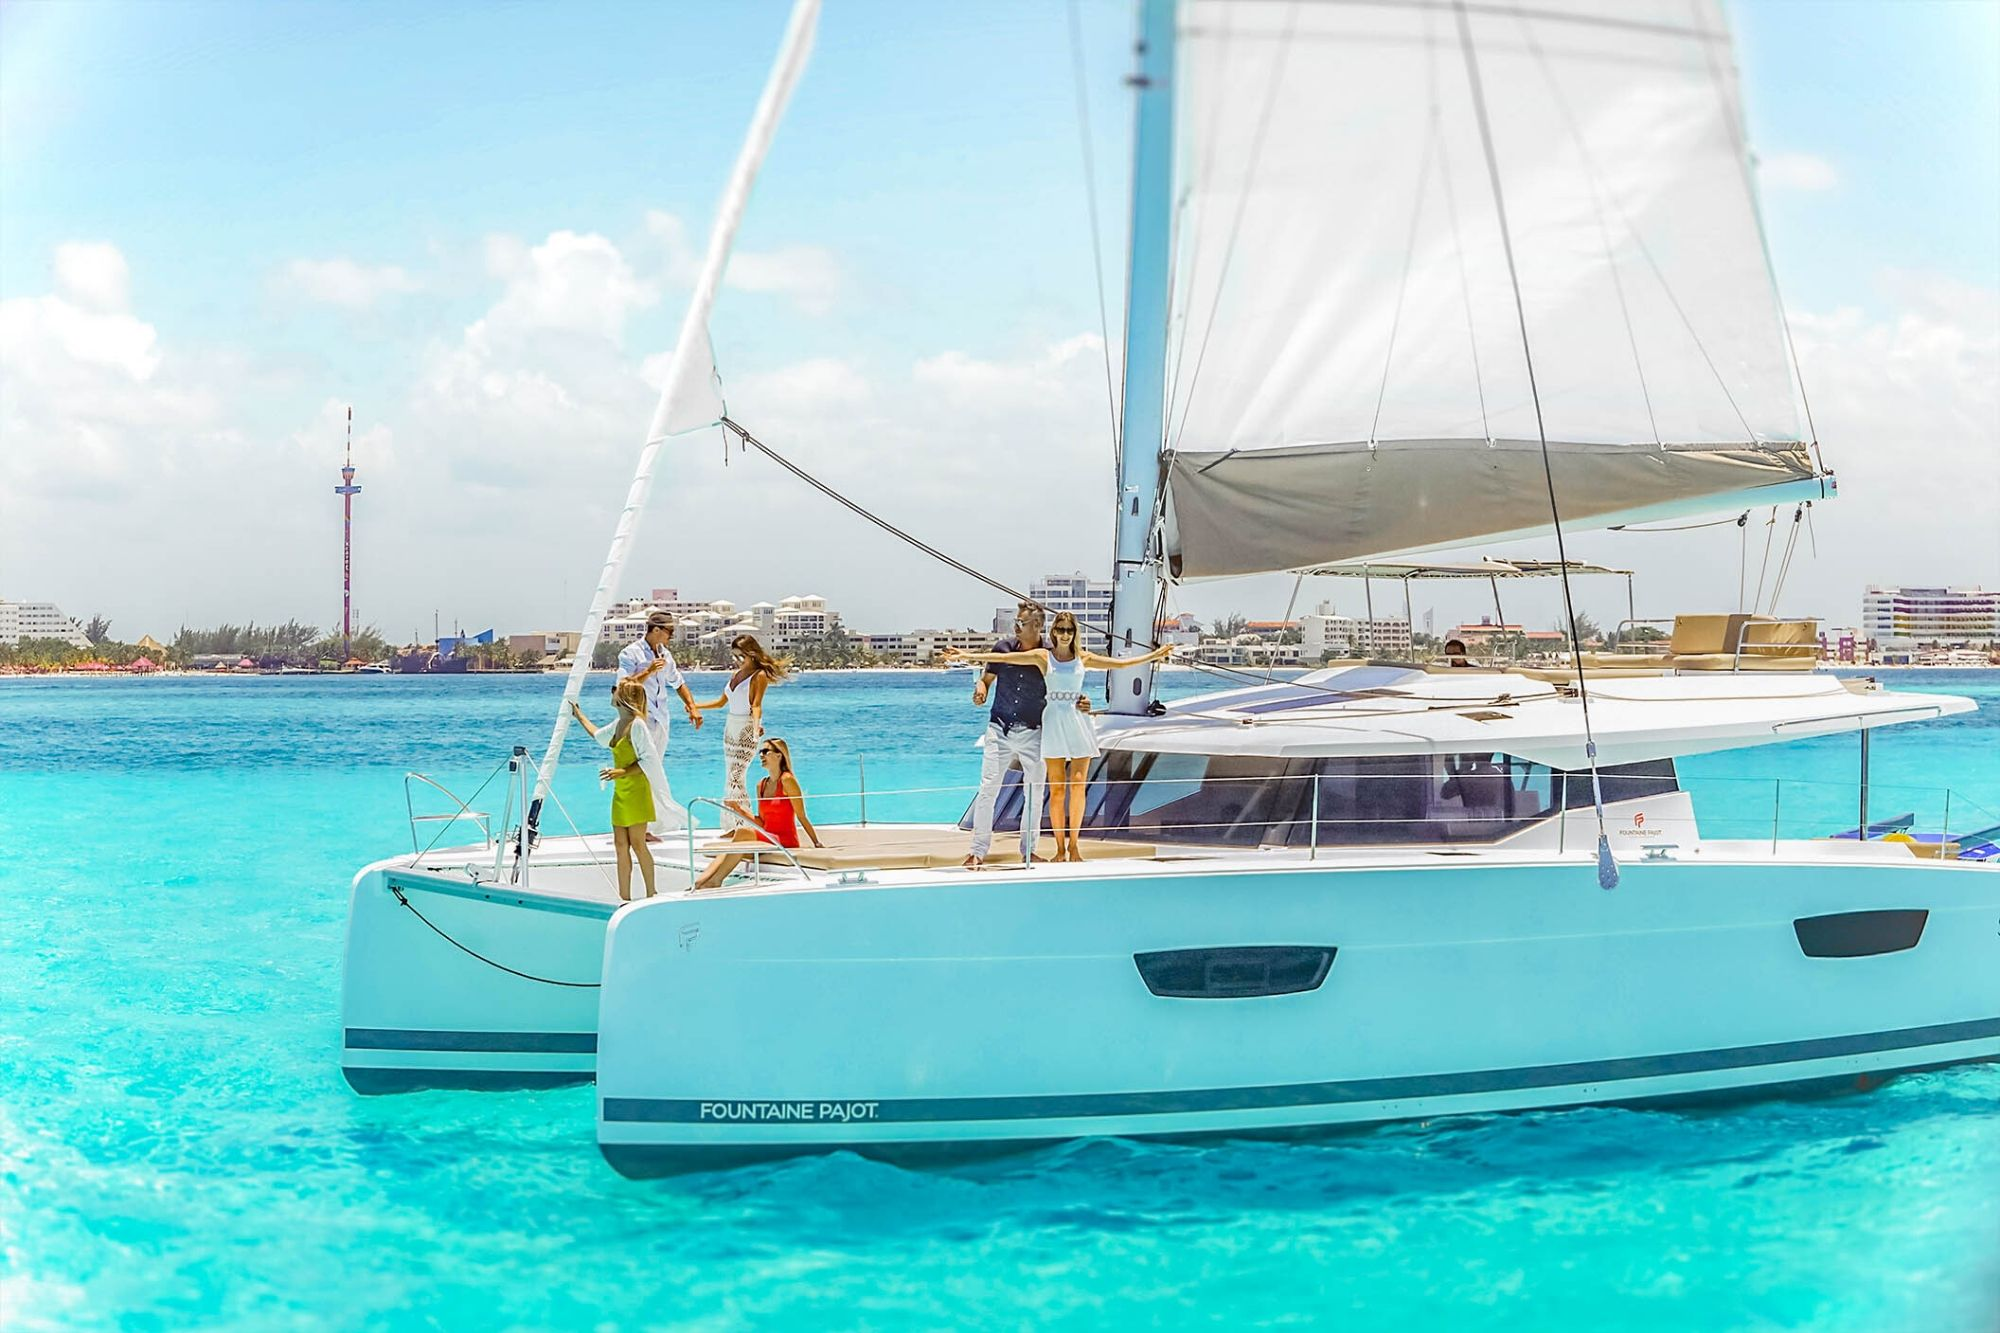 8 Private Isla Mujeres tour in catamaran - Victoria - Cancun Sailing